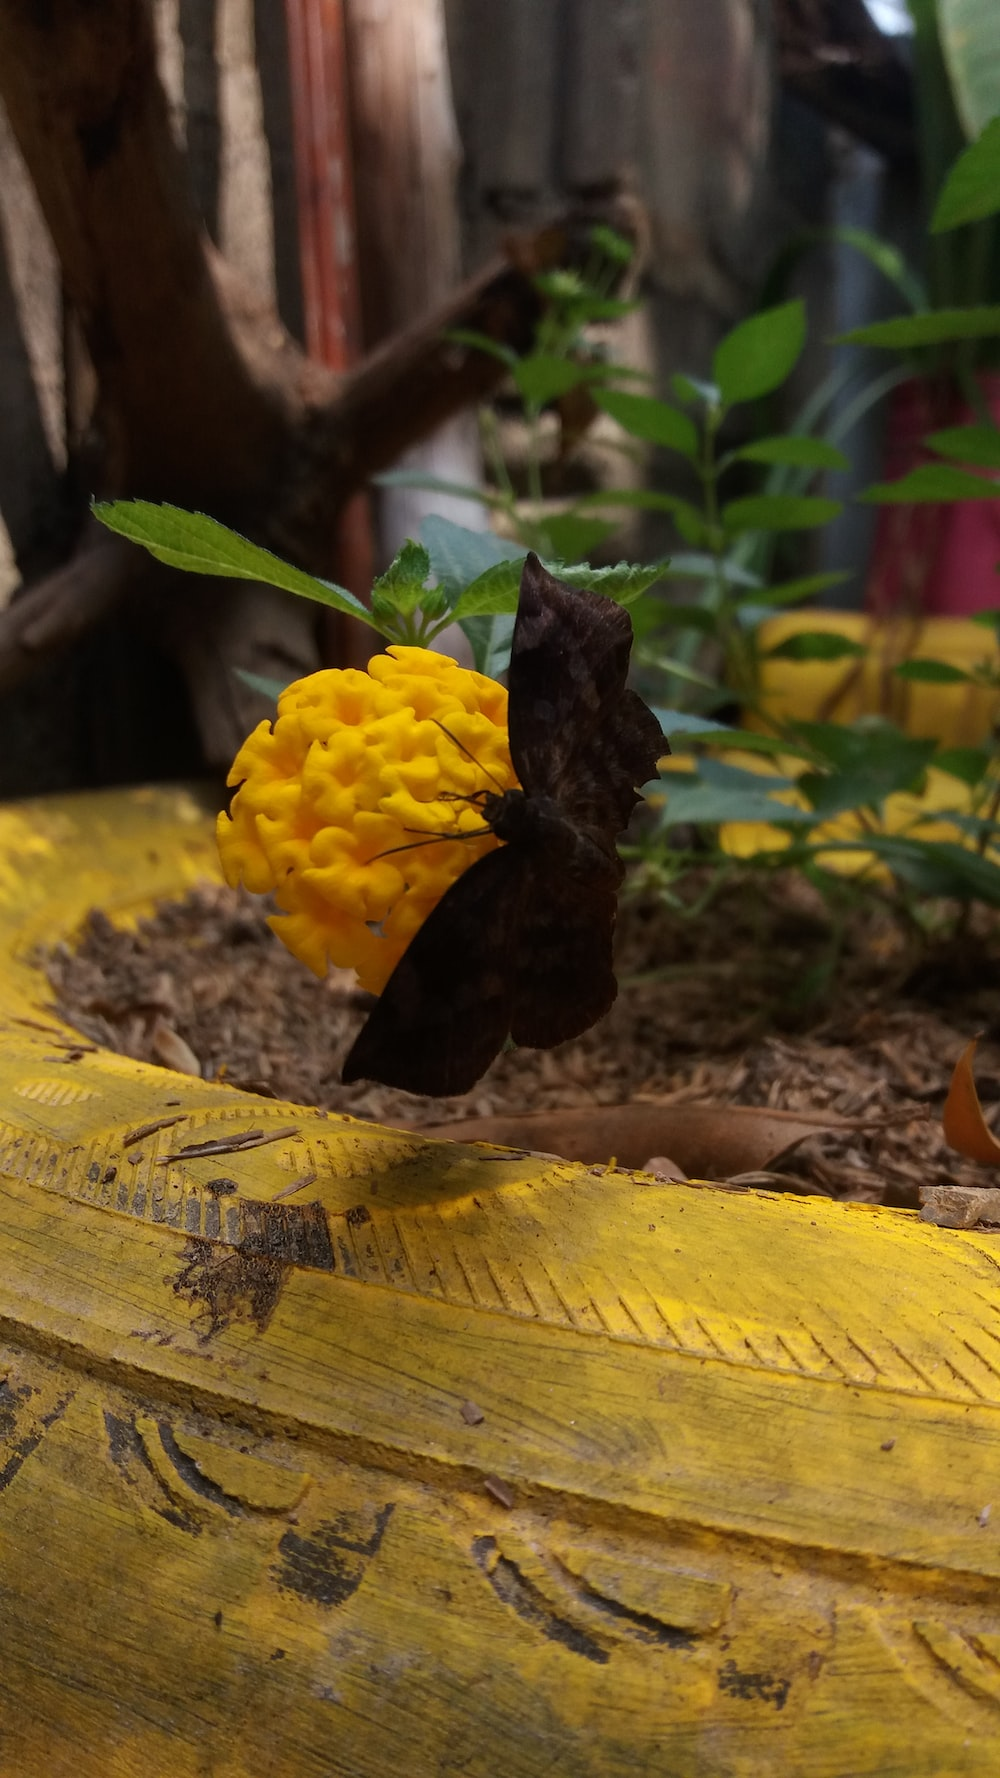 Nature, garden, flower and butterfly HD photo by maria paula ...